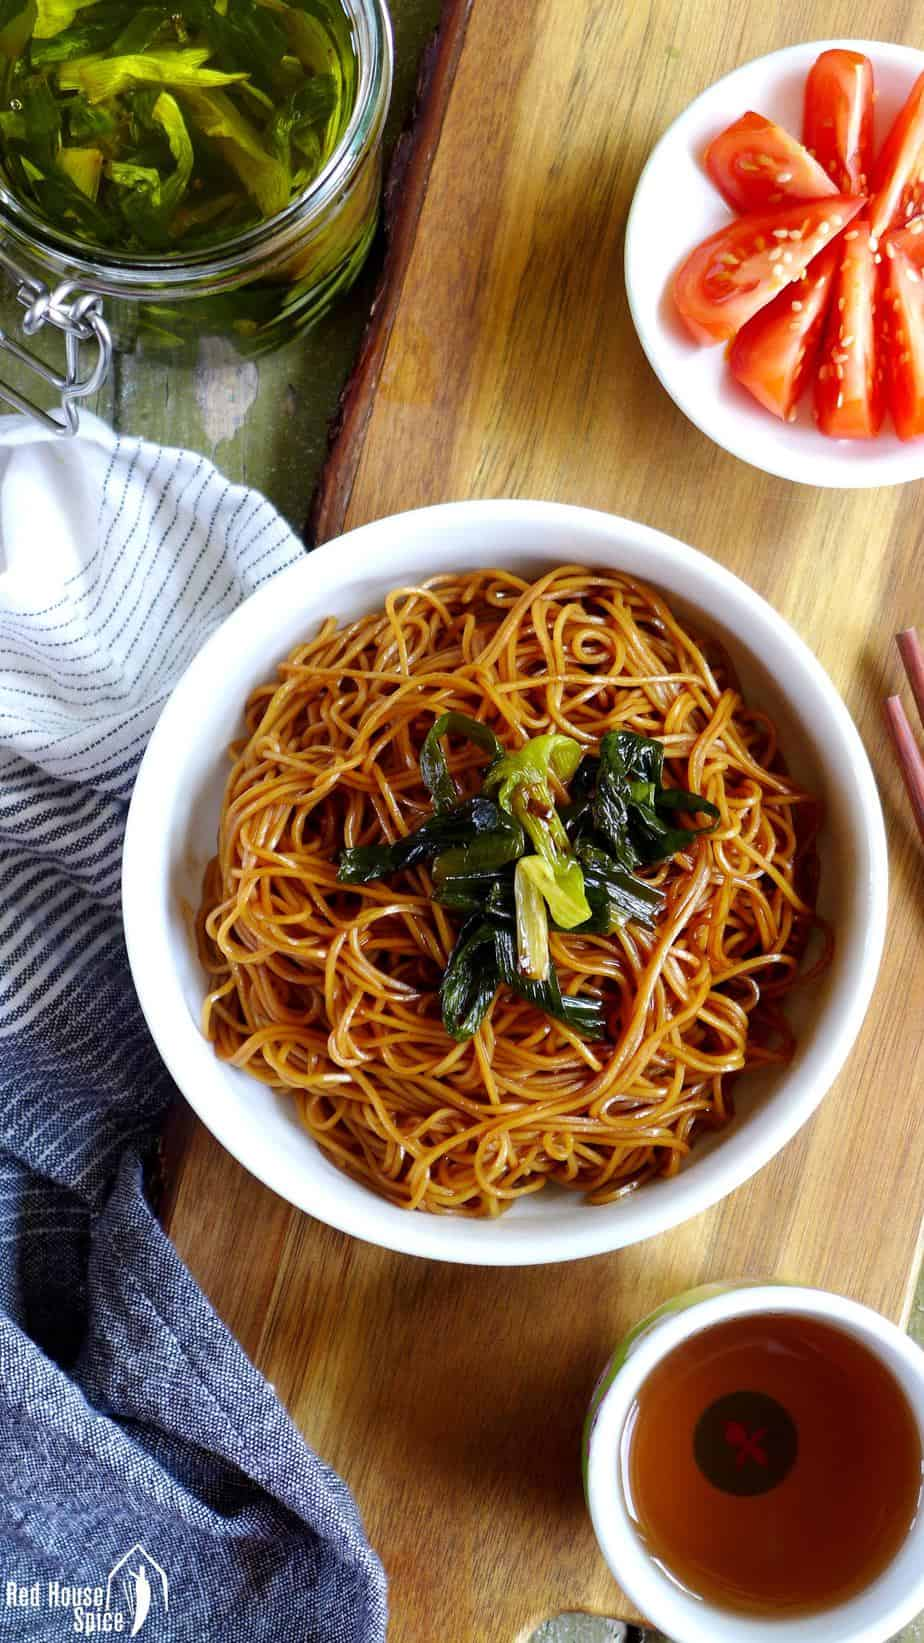 A bowl of Shanghai spring onion oil noodles